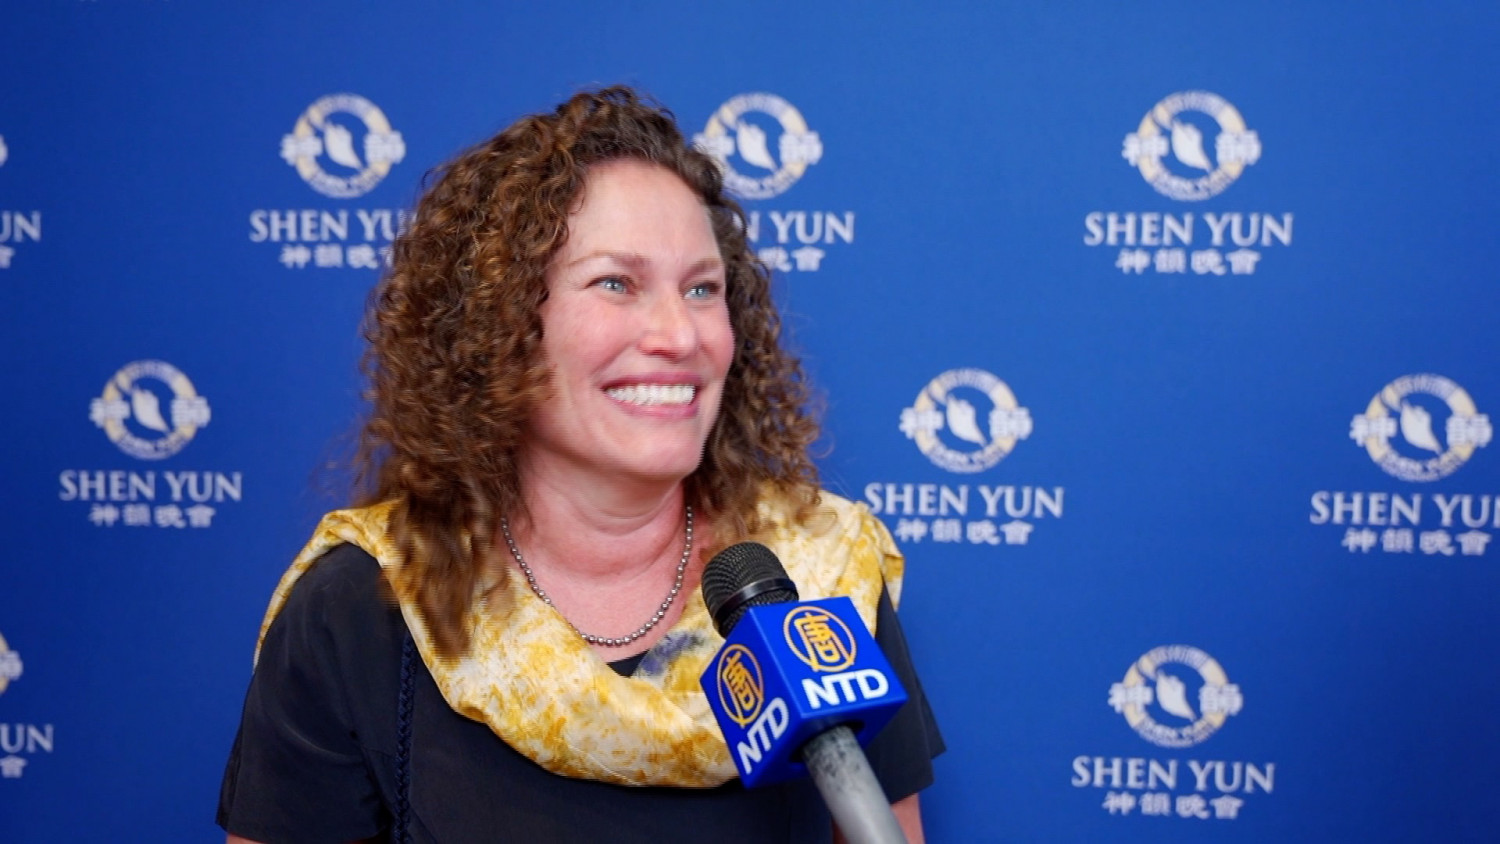 Shen Yun Shows a Very Positive Image of China, Says Purchase Audience